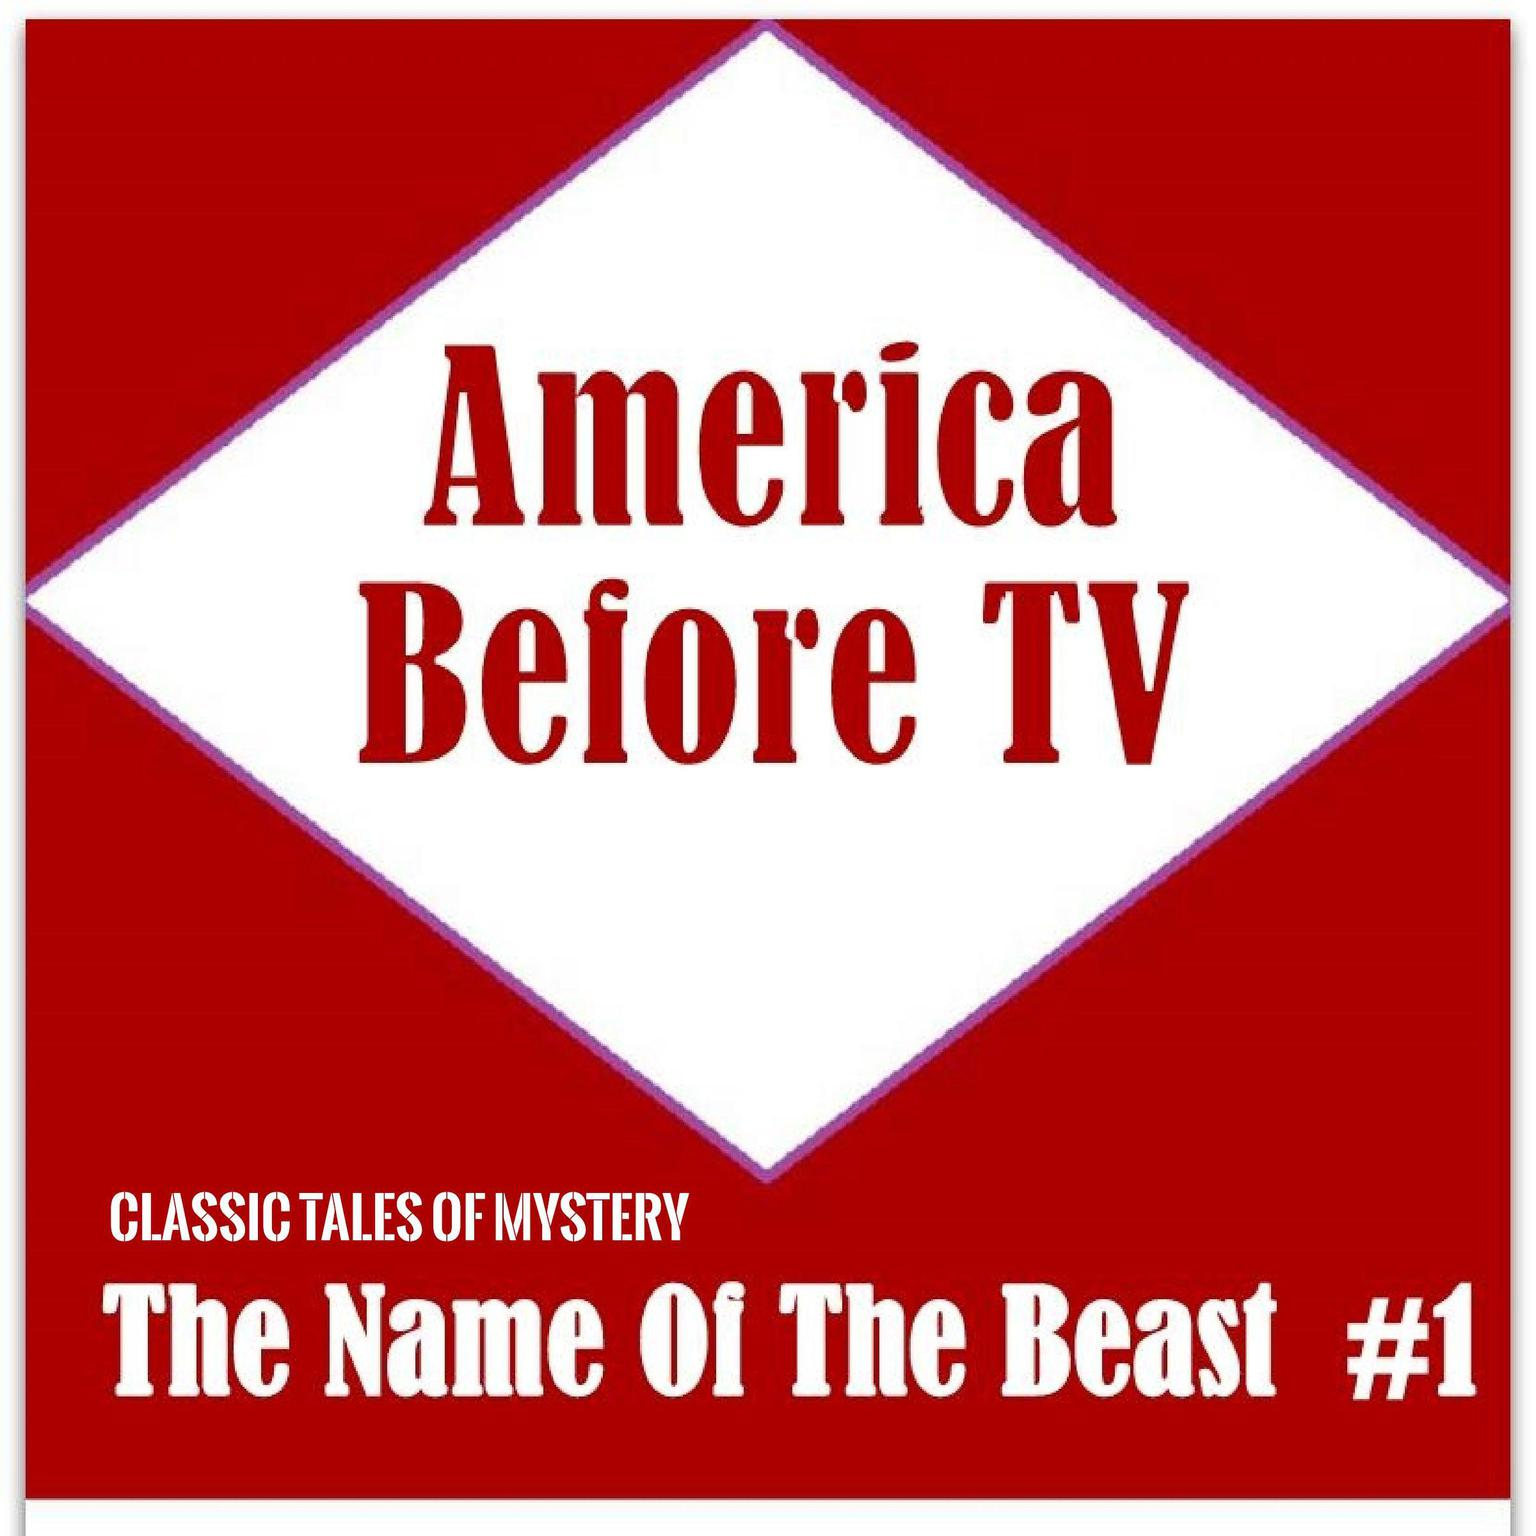 Printable America Before TV - The Name Of The Beast  #1 Audiobook Cover Art